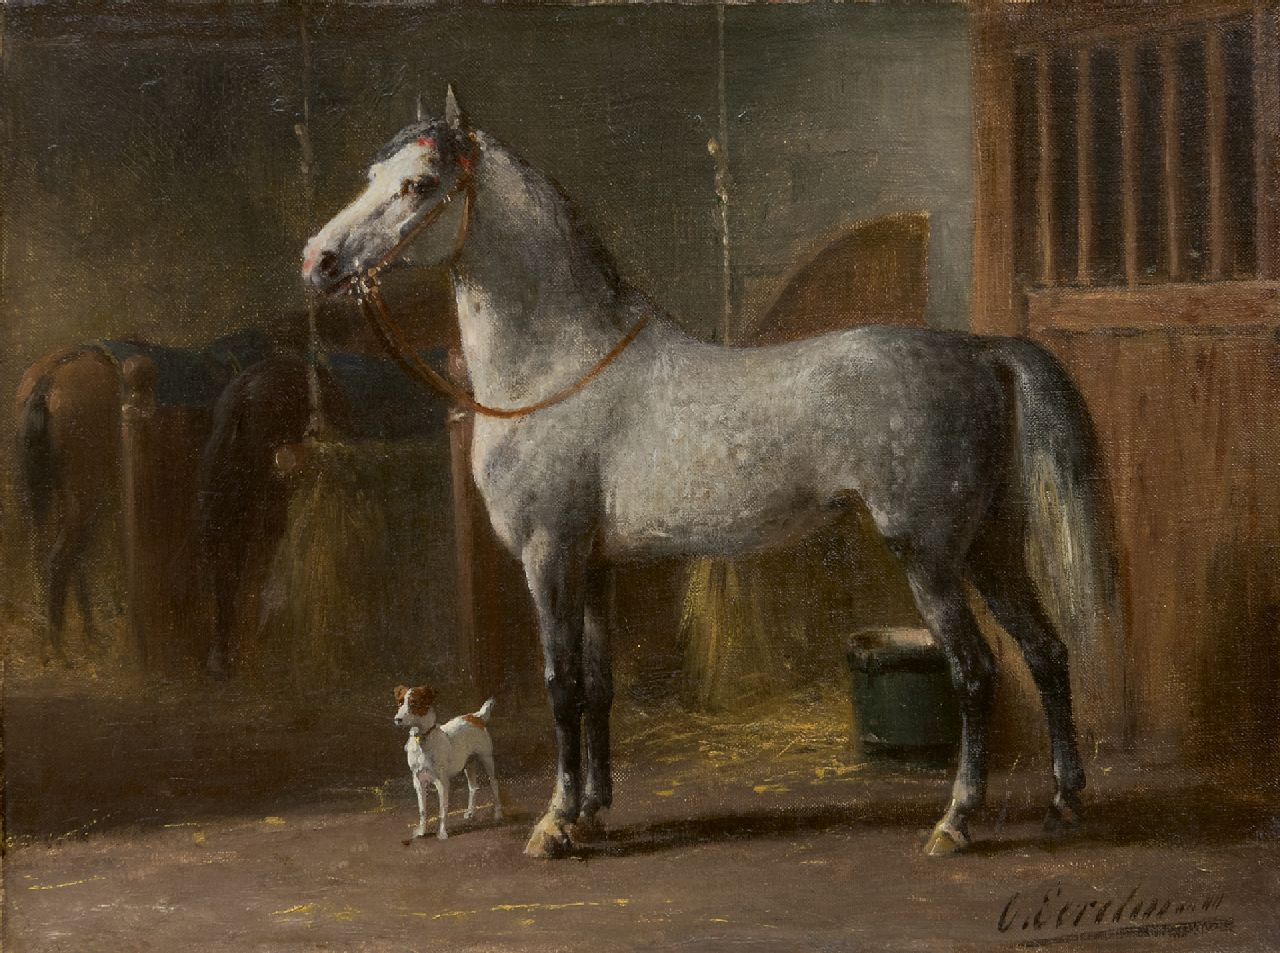 Eerelman O.  | Otto Eerelman, A grey in a stable, oil on canvas 25.2 x 31.2 cm, signed l.r.